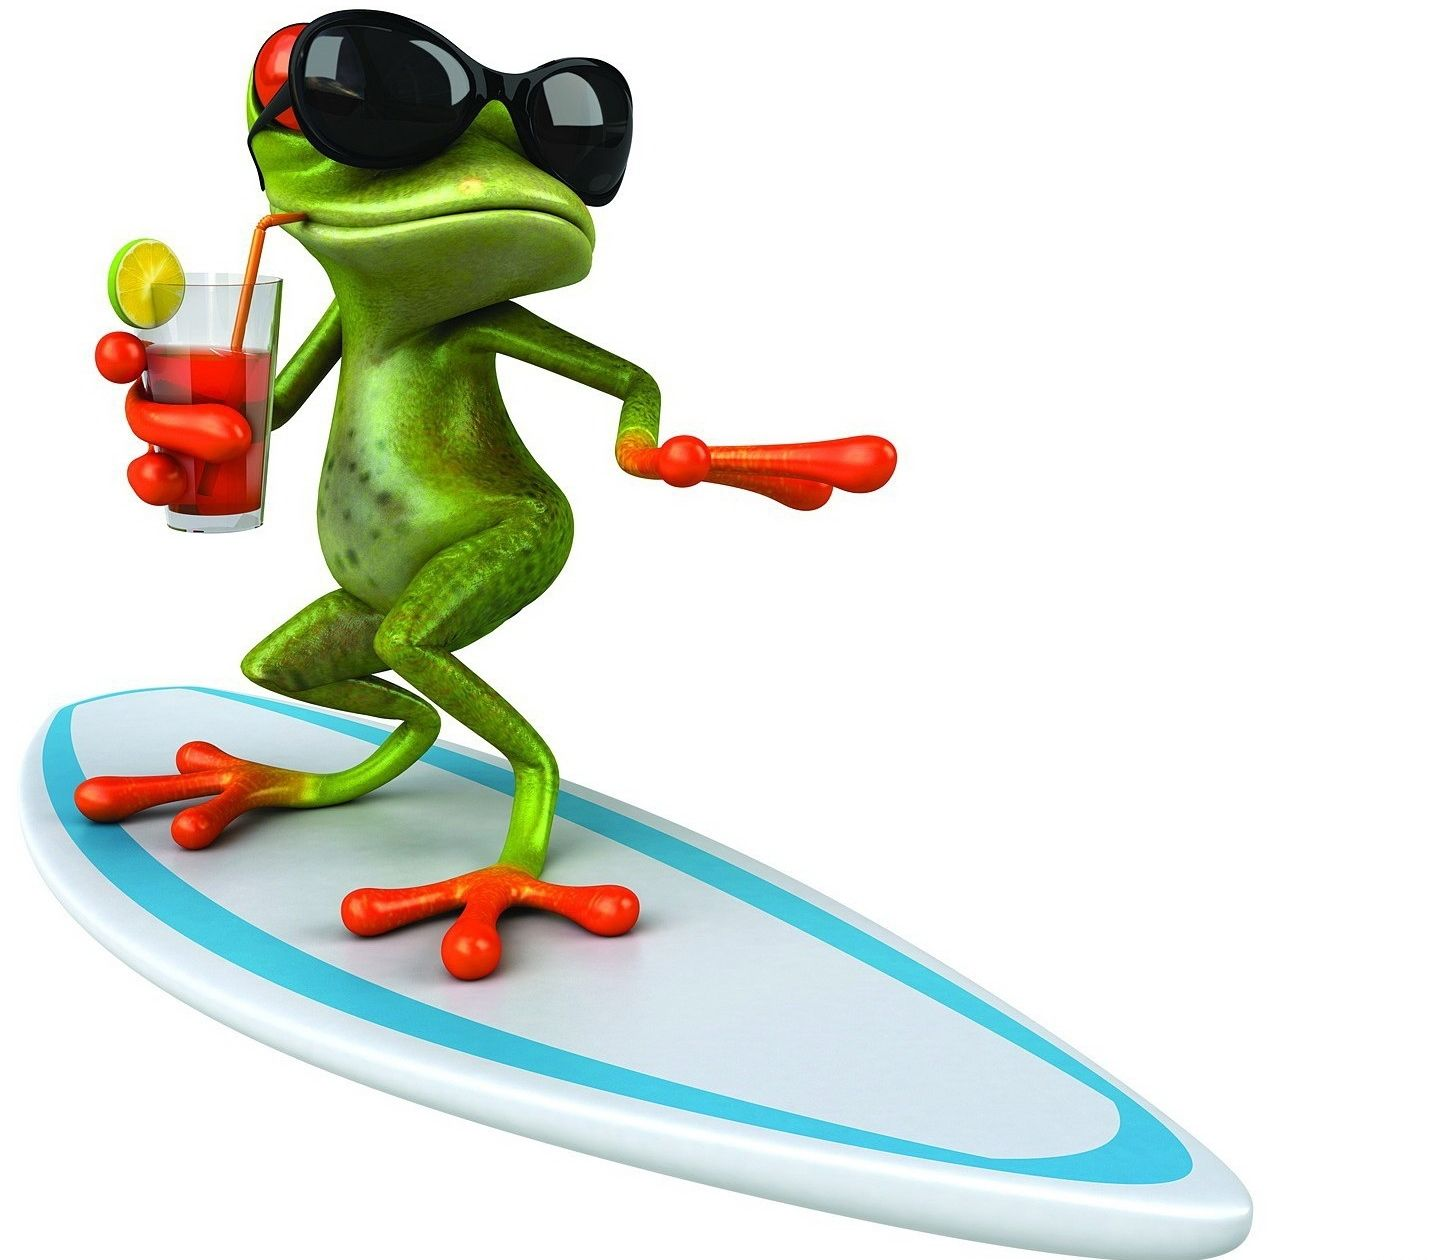 Funny frogs clip art frog wallpaper animated - Frog cartoon wallpaper ...